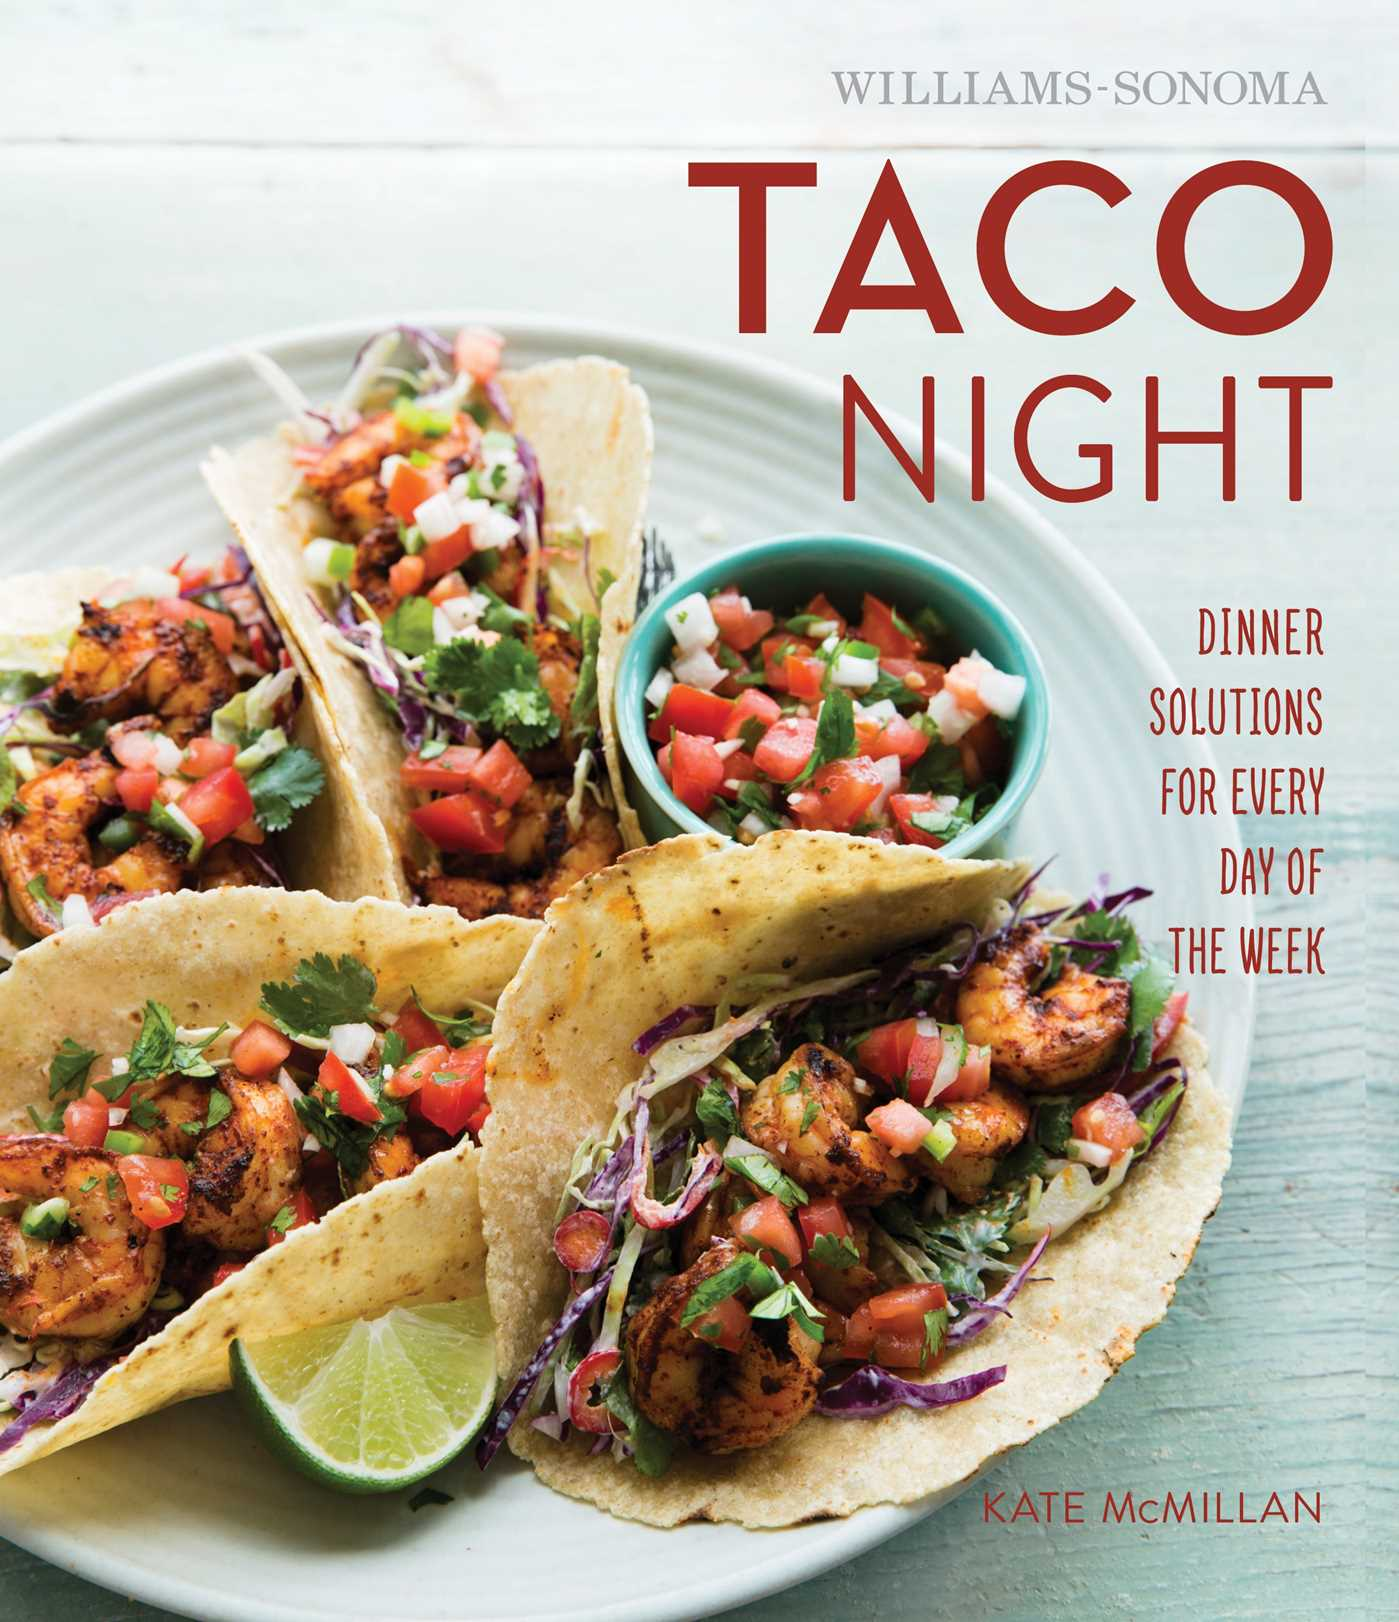 Taco-night-(williams-sonoma)-9781616287337_hr